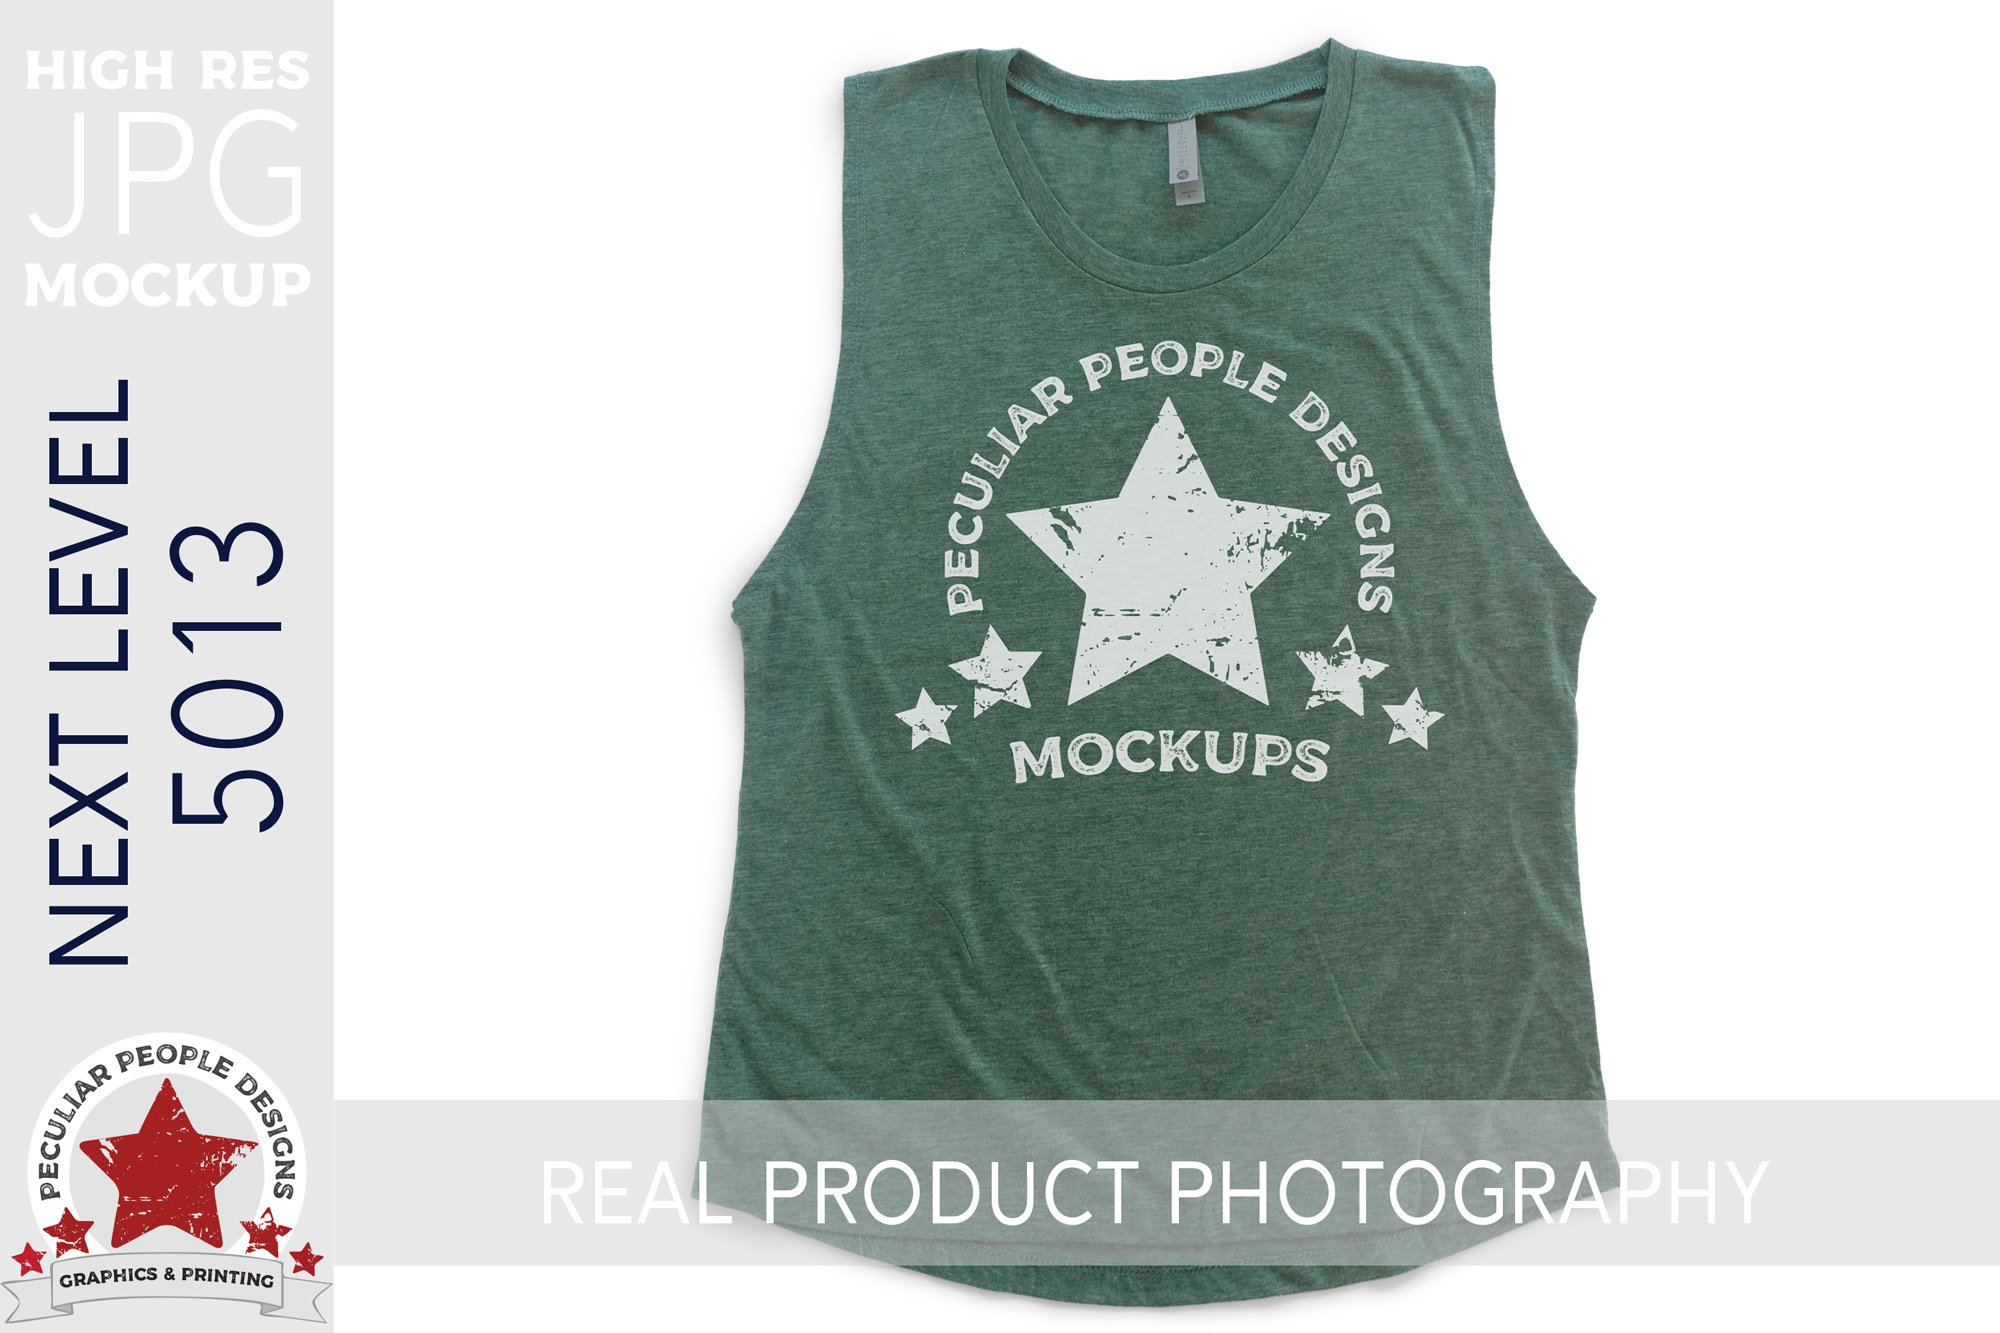 Muscle Tank Top Clothing Mockup Next Level 5013 Green example image 1